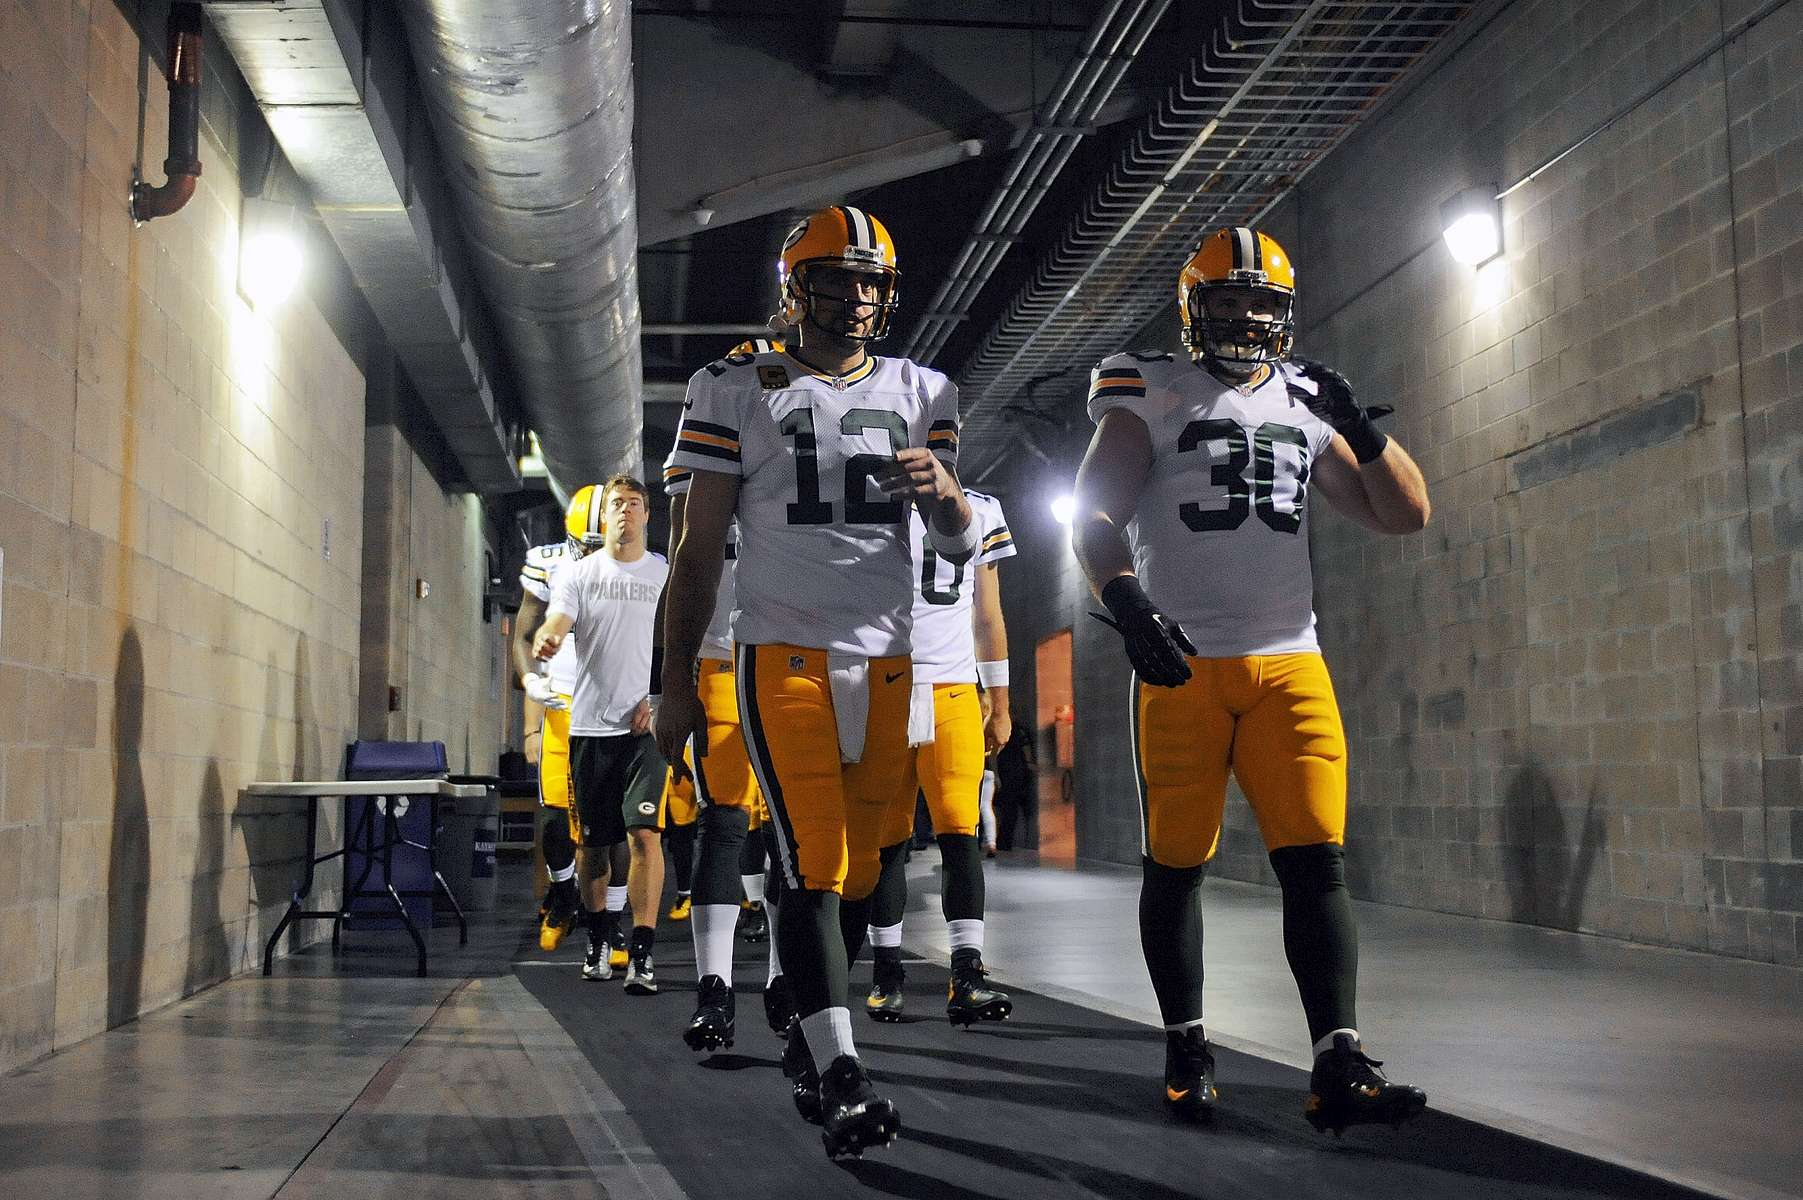 Green Bay Packers quarterback Aaron Rodgers (12) walks to the field before facing the Tampa Bay Buccaneers at Raymond James Stadium on Sunday, December 21, 2014 in Tampa, Fla.